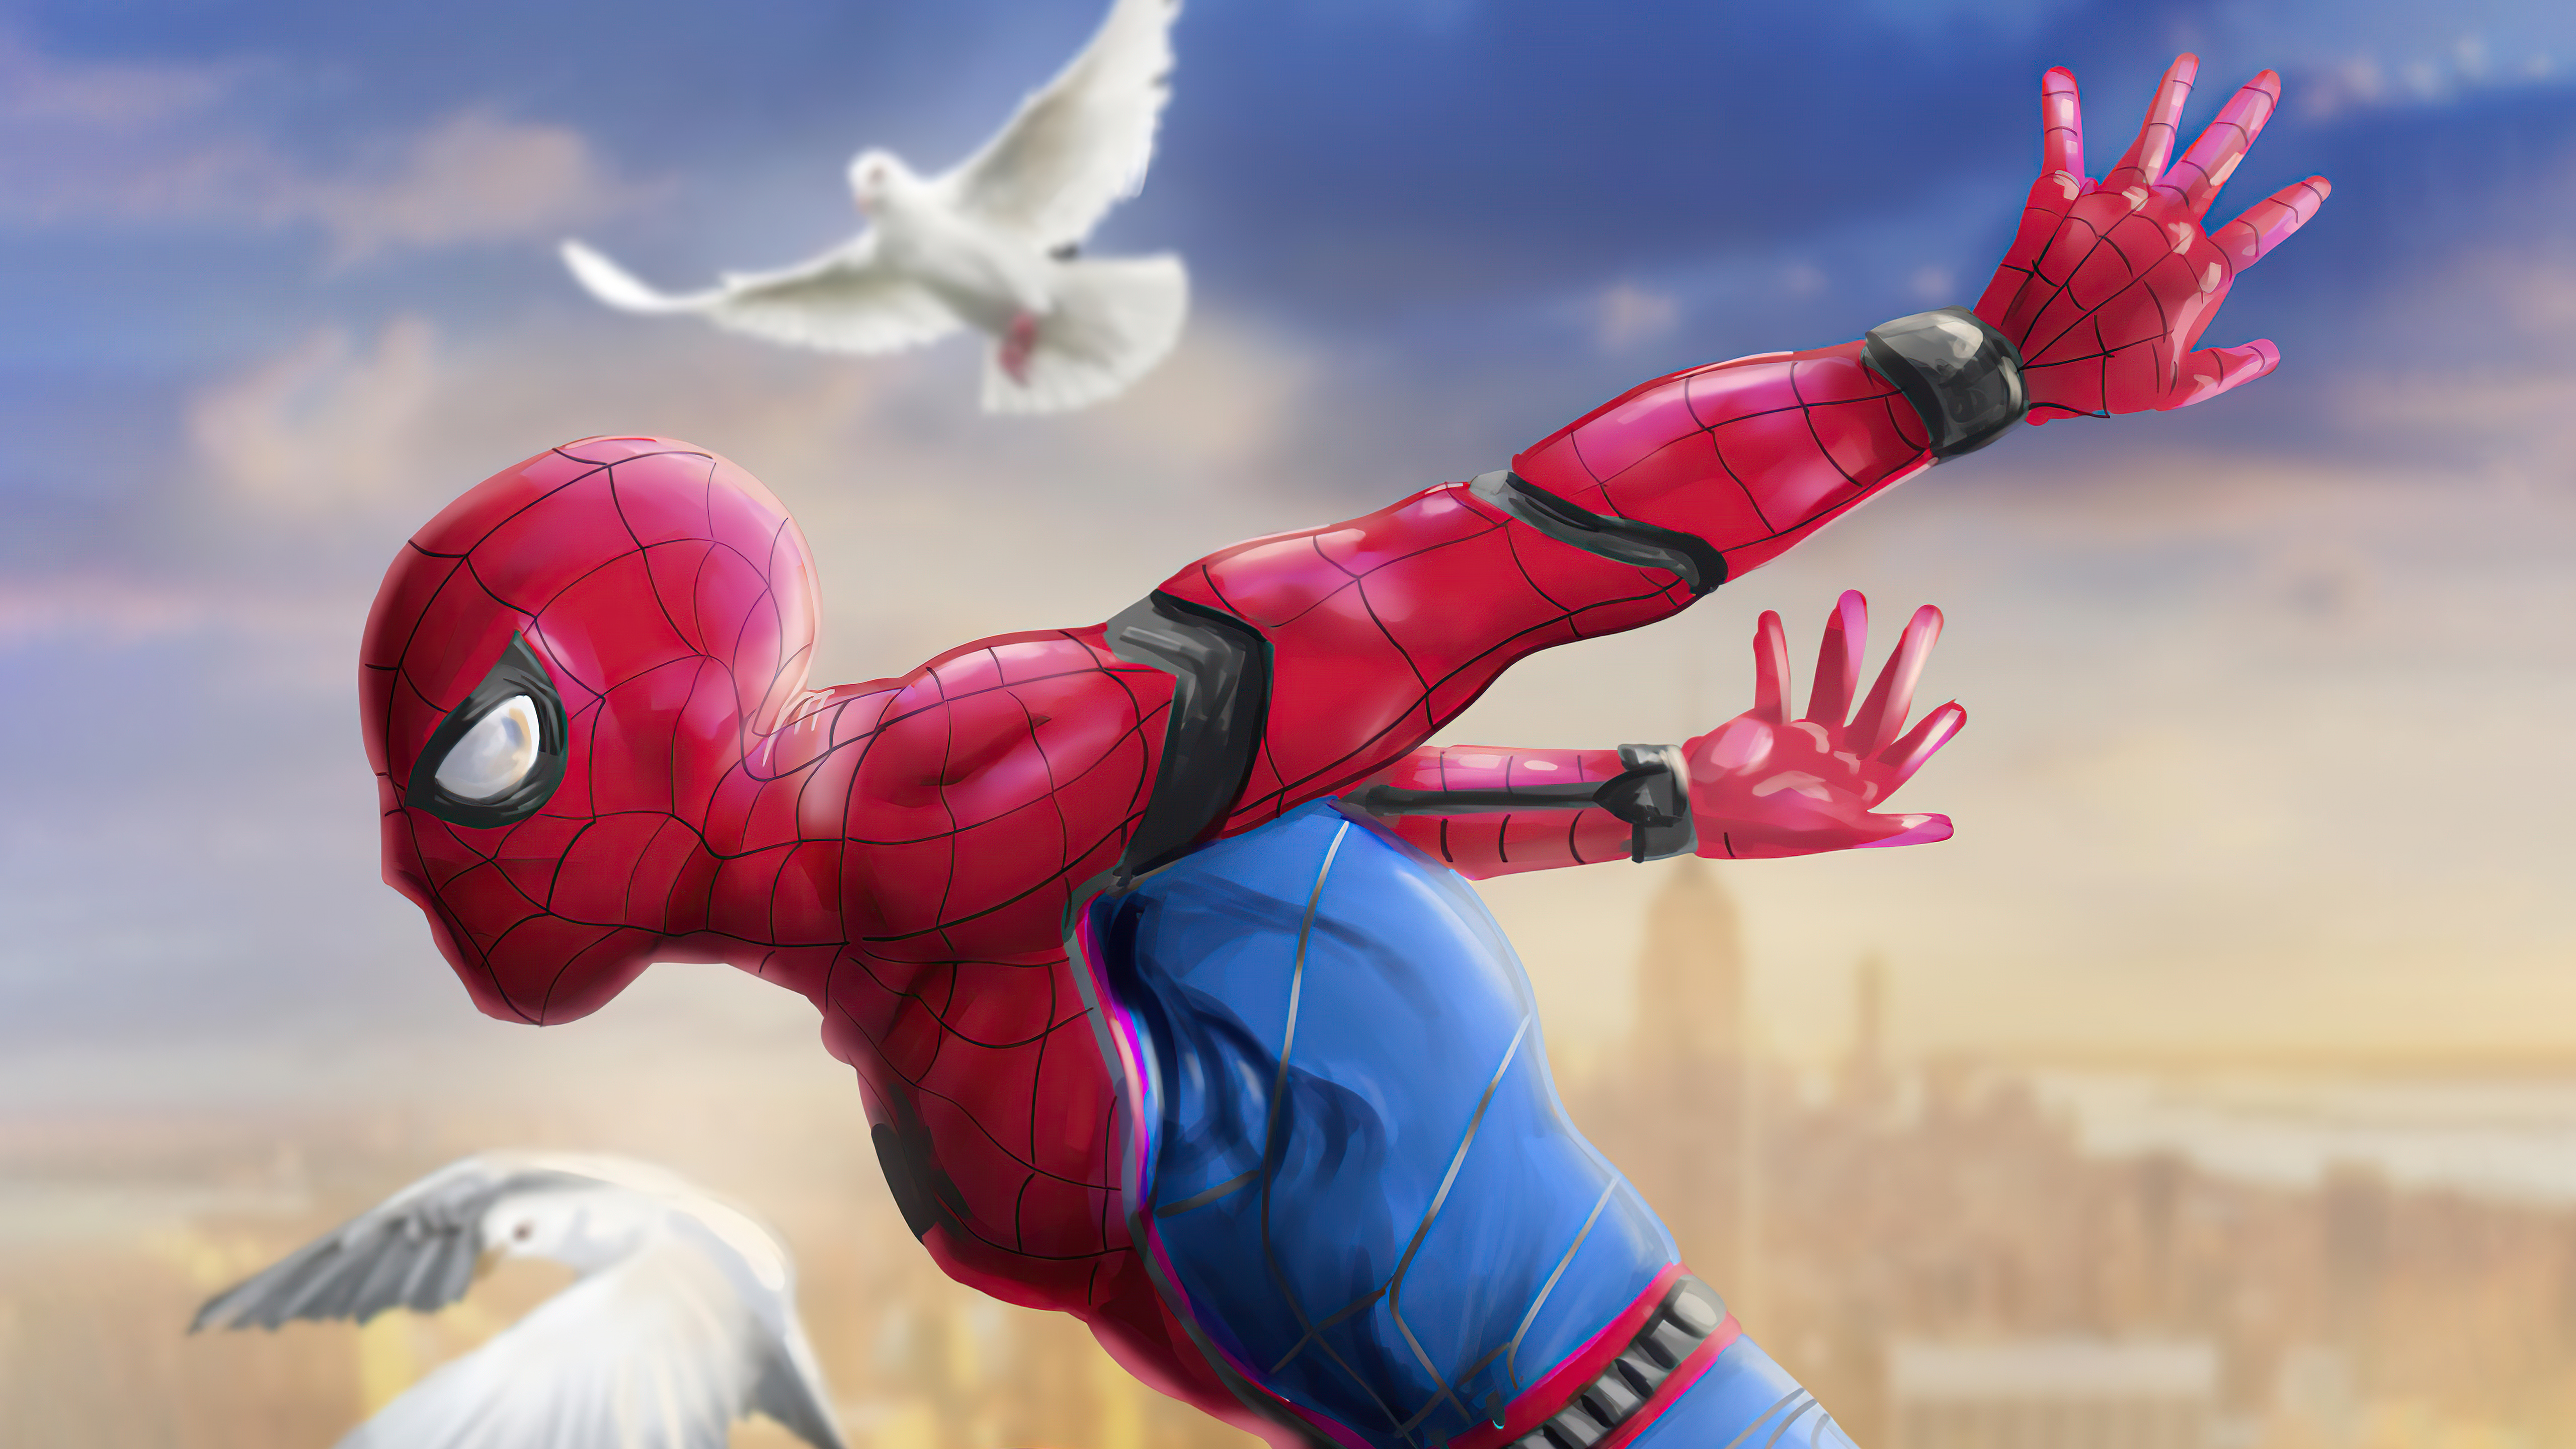 Wallpaper Spider Man ready for the day Fan Art